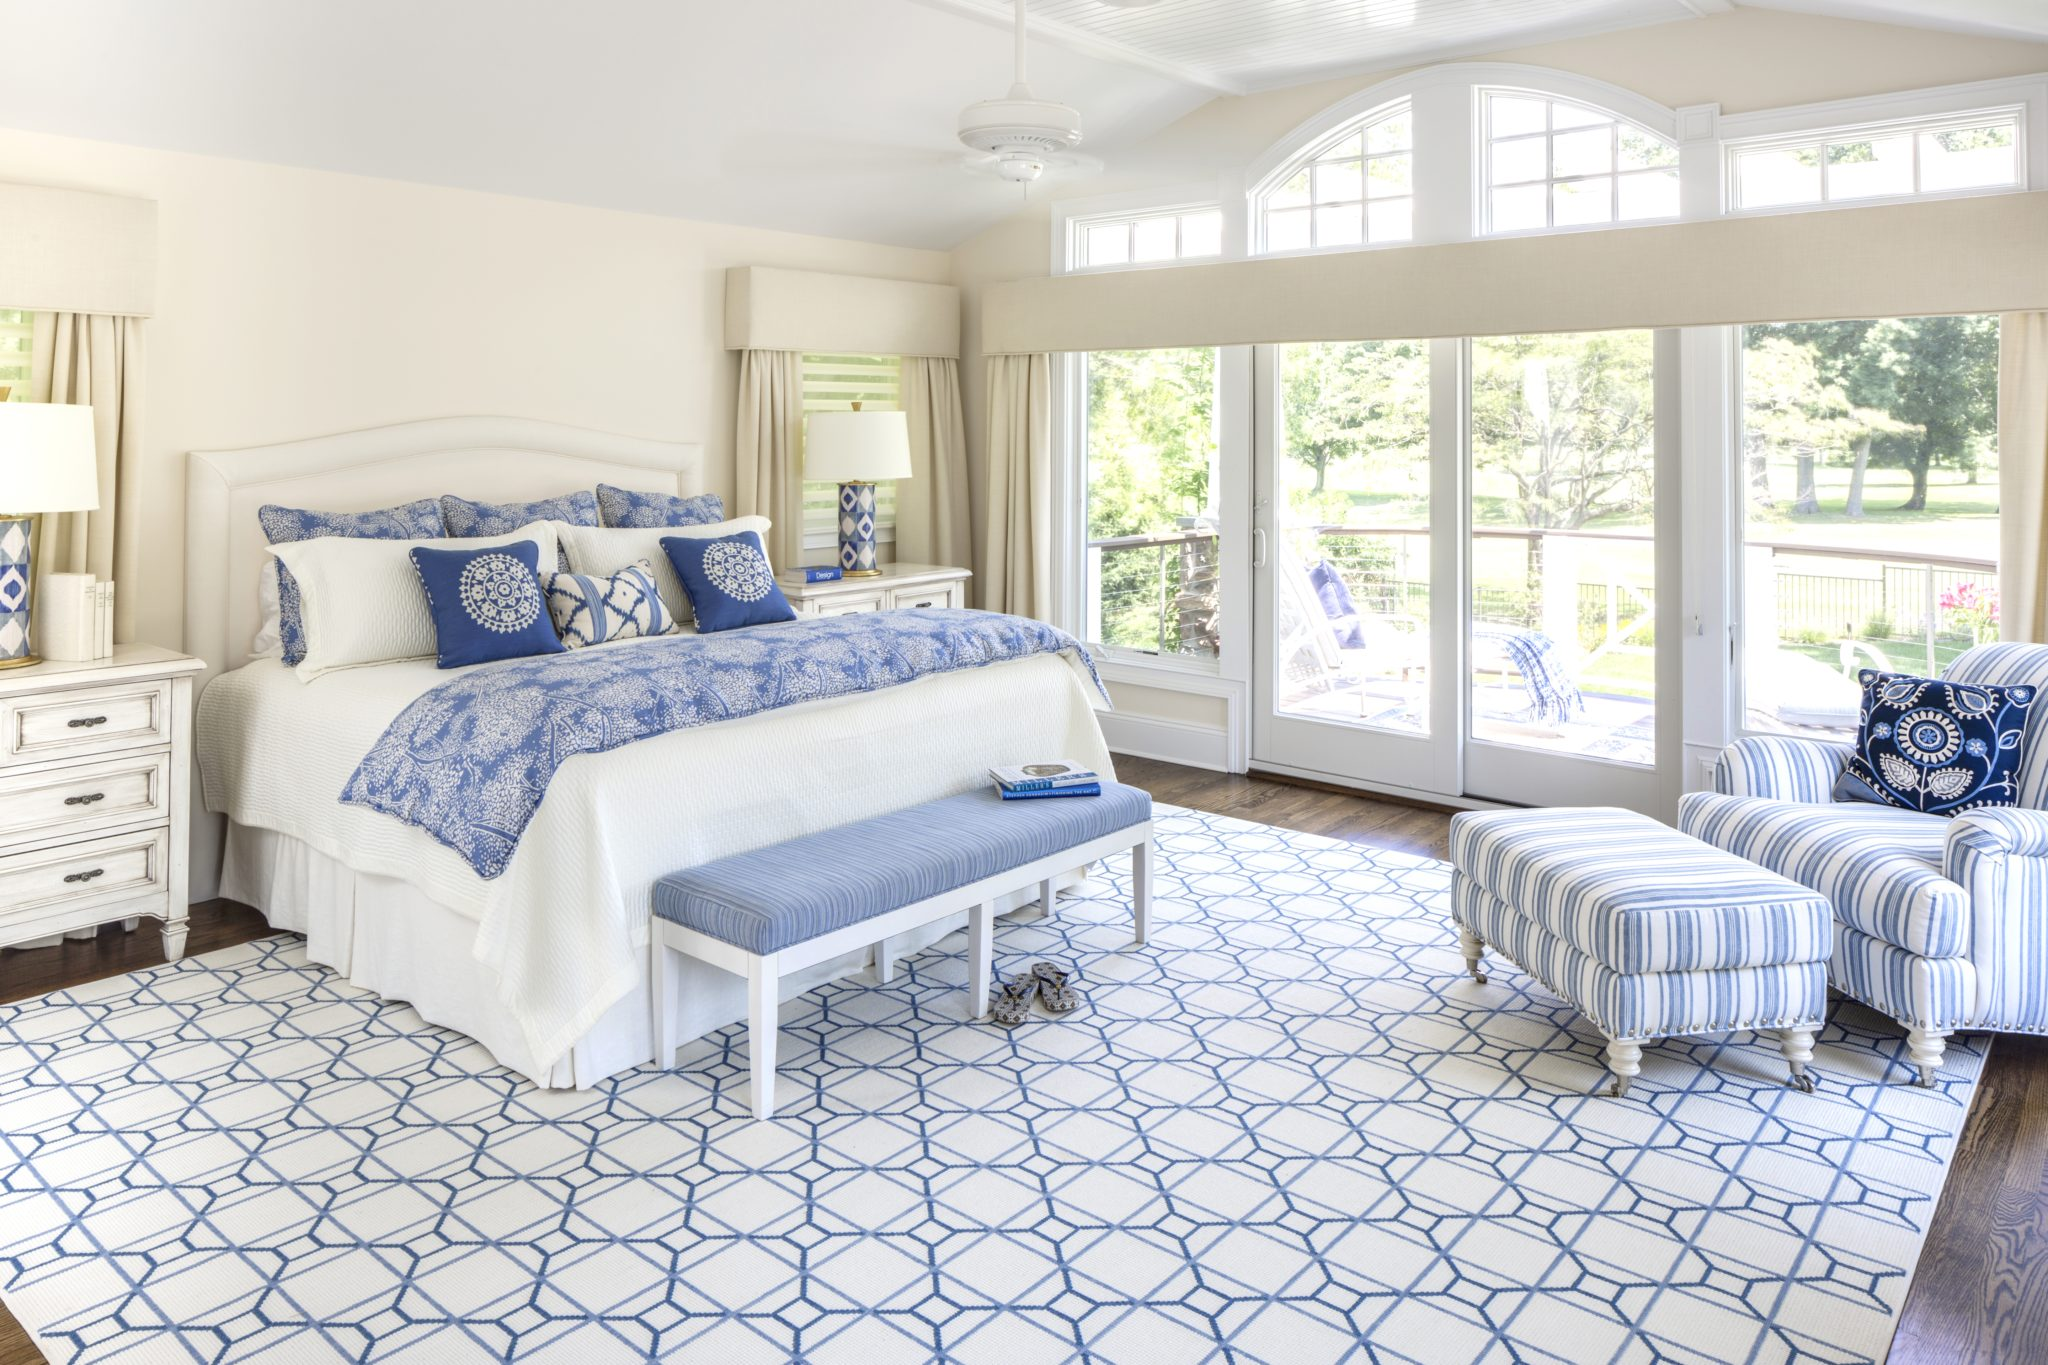 Master bedroom with a wall of windows and cool blues by Kim Radovich, Kim E. Courtney Interiors